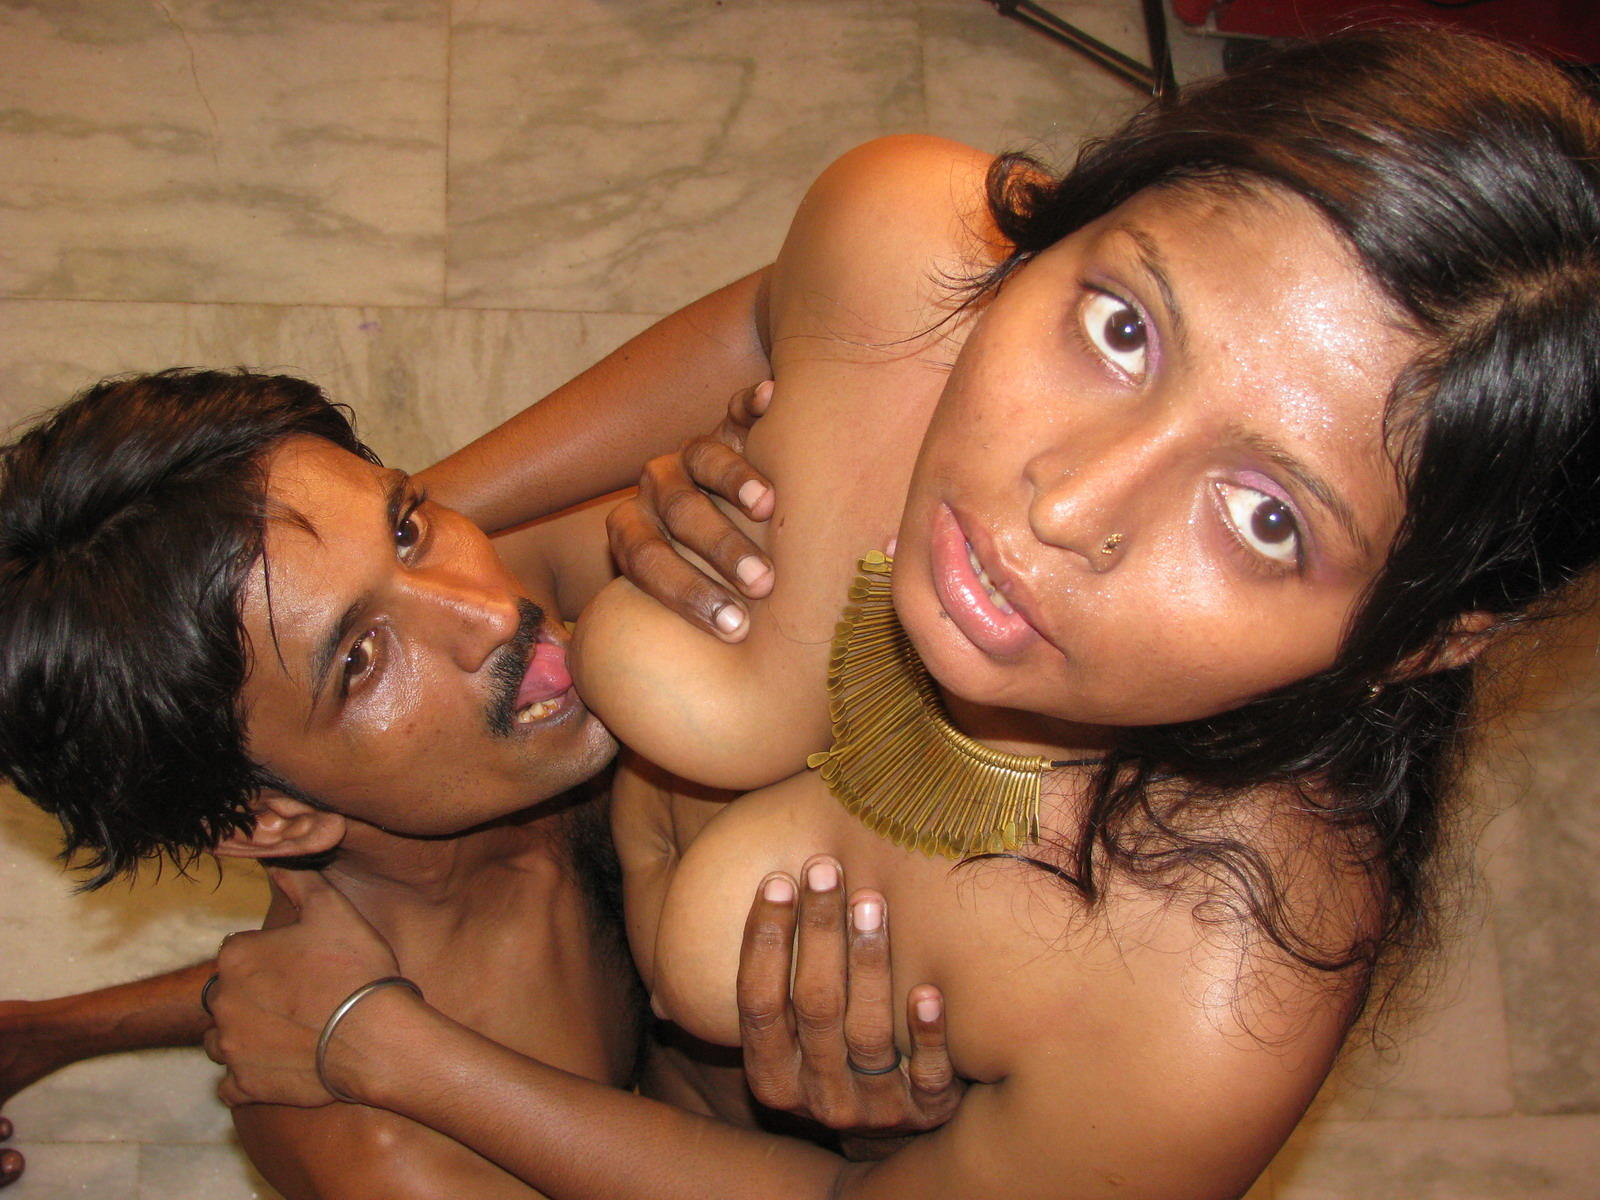 Sex naked breast kissing in india opinion